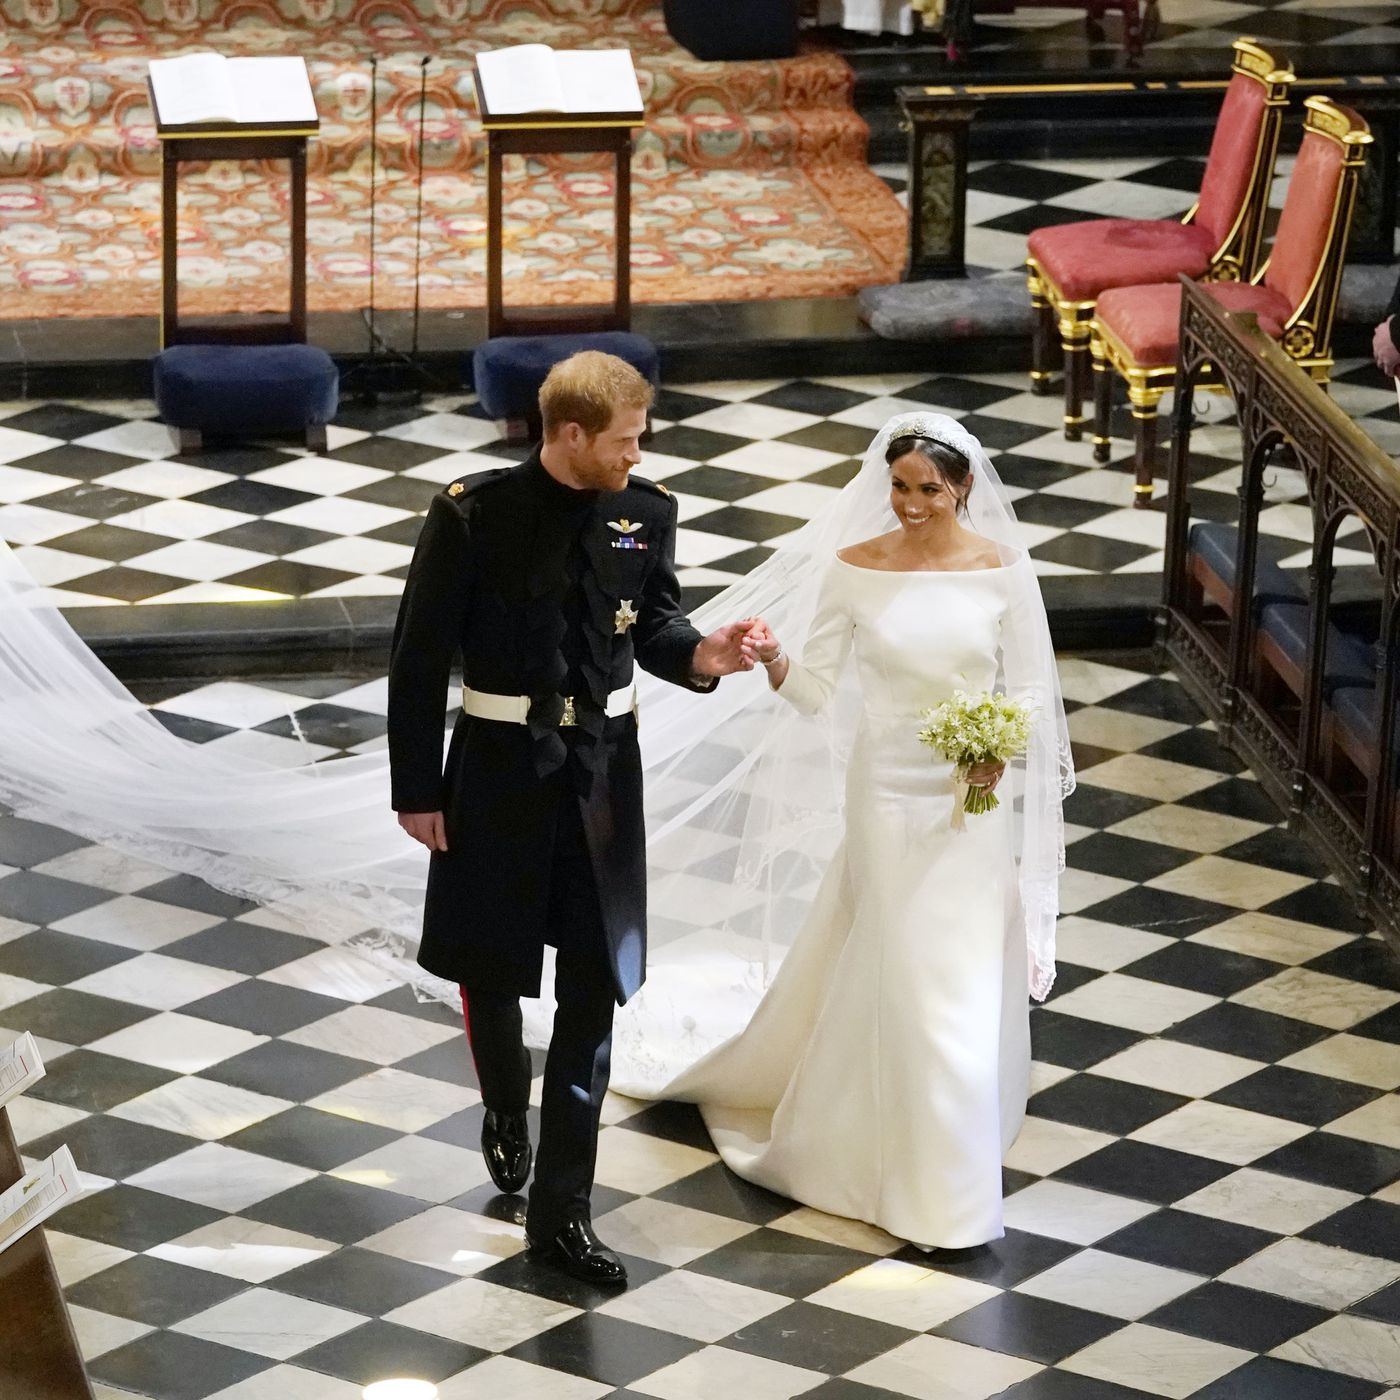 Milo Yiannopoulos Wedding.Americans Are More Curious About Meghan Markle And Prince Harry Than